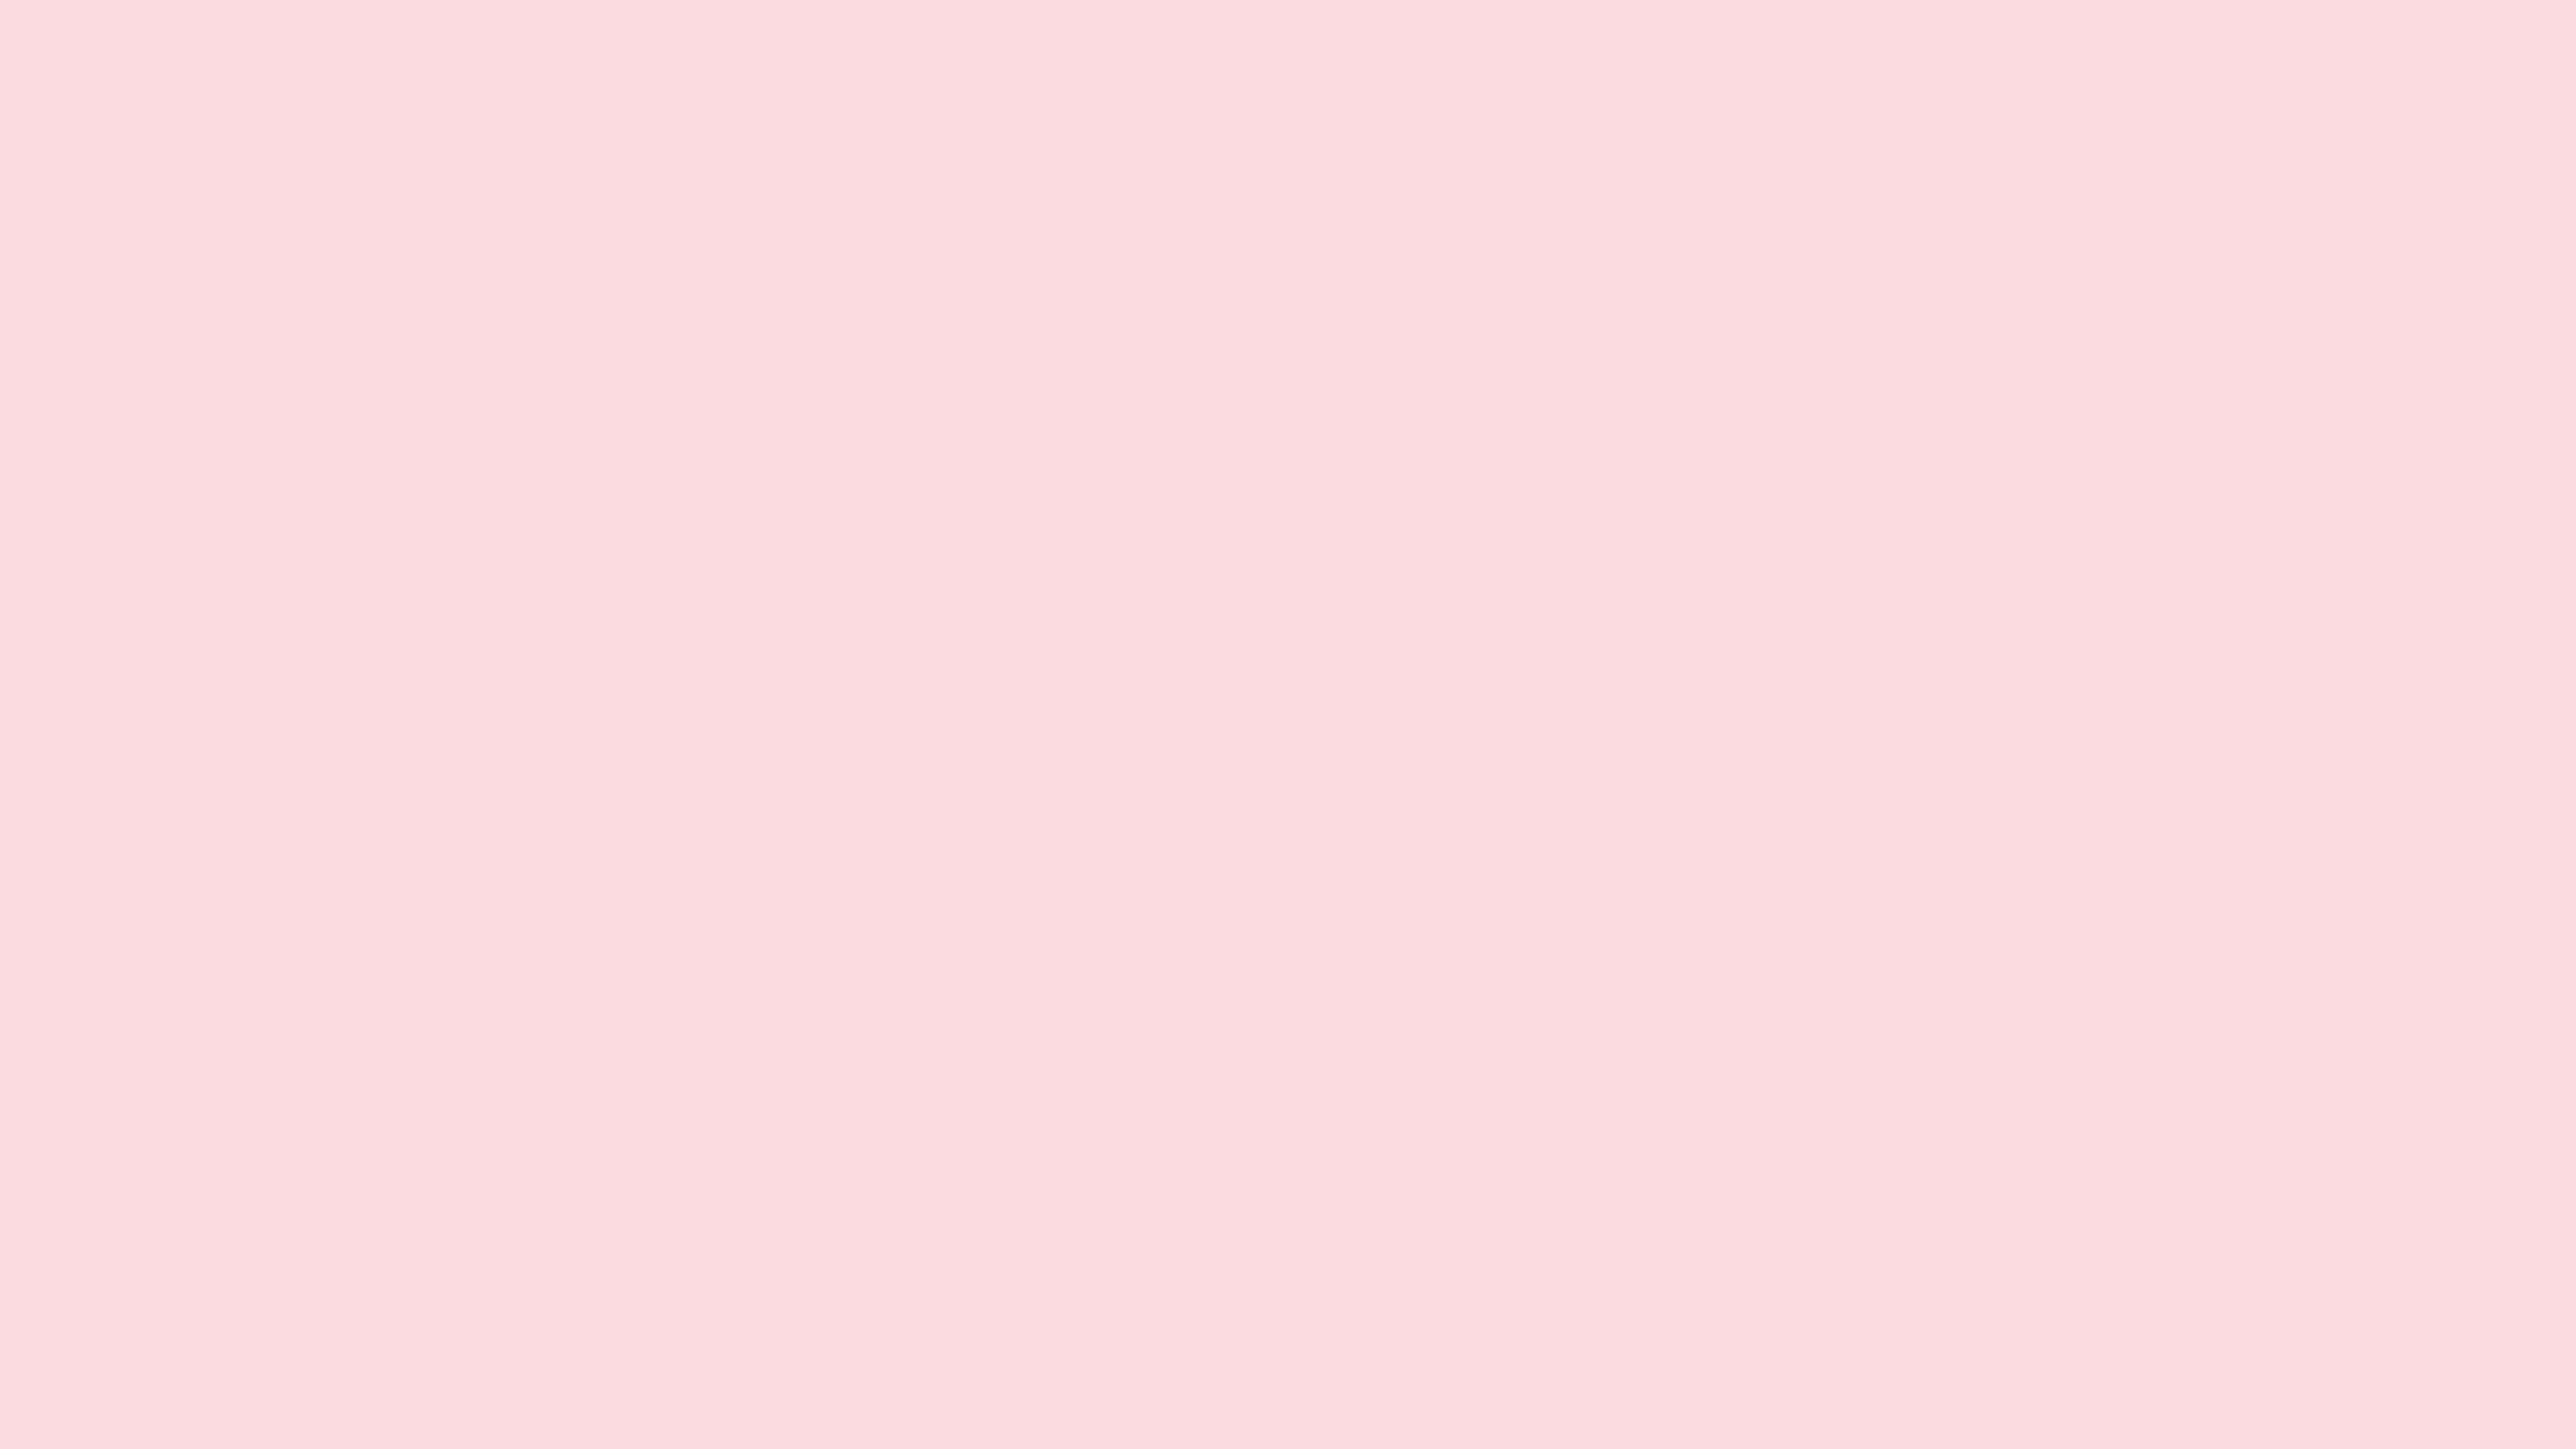 5120x2880 Pale Pink Solid Color Background